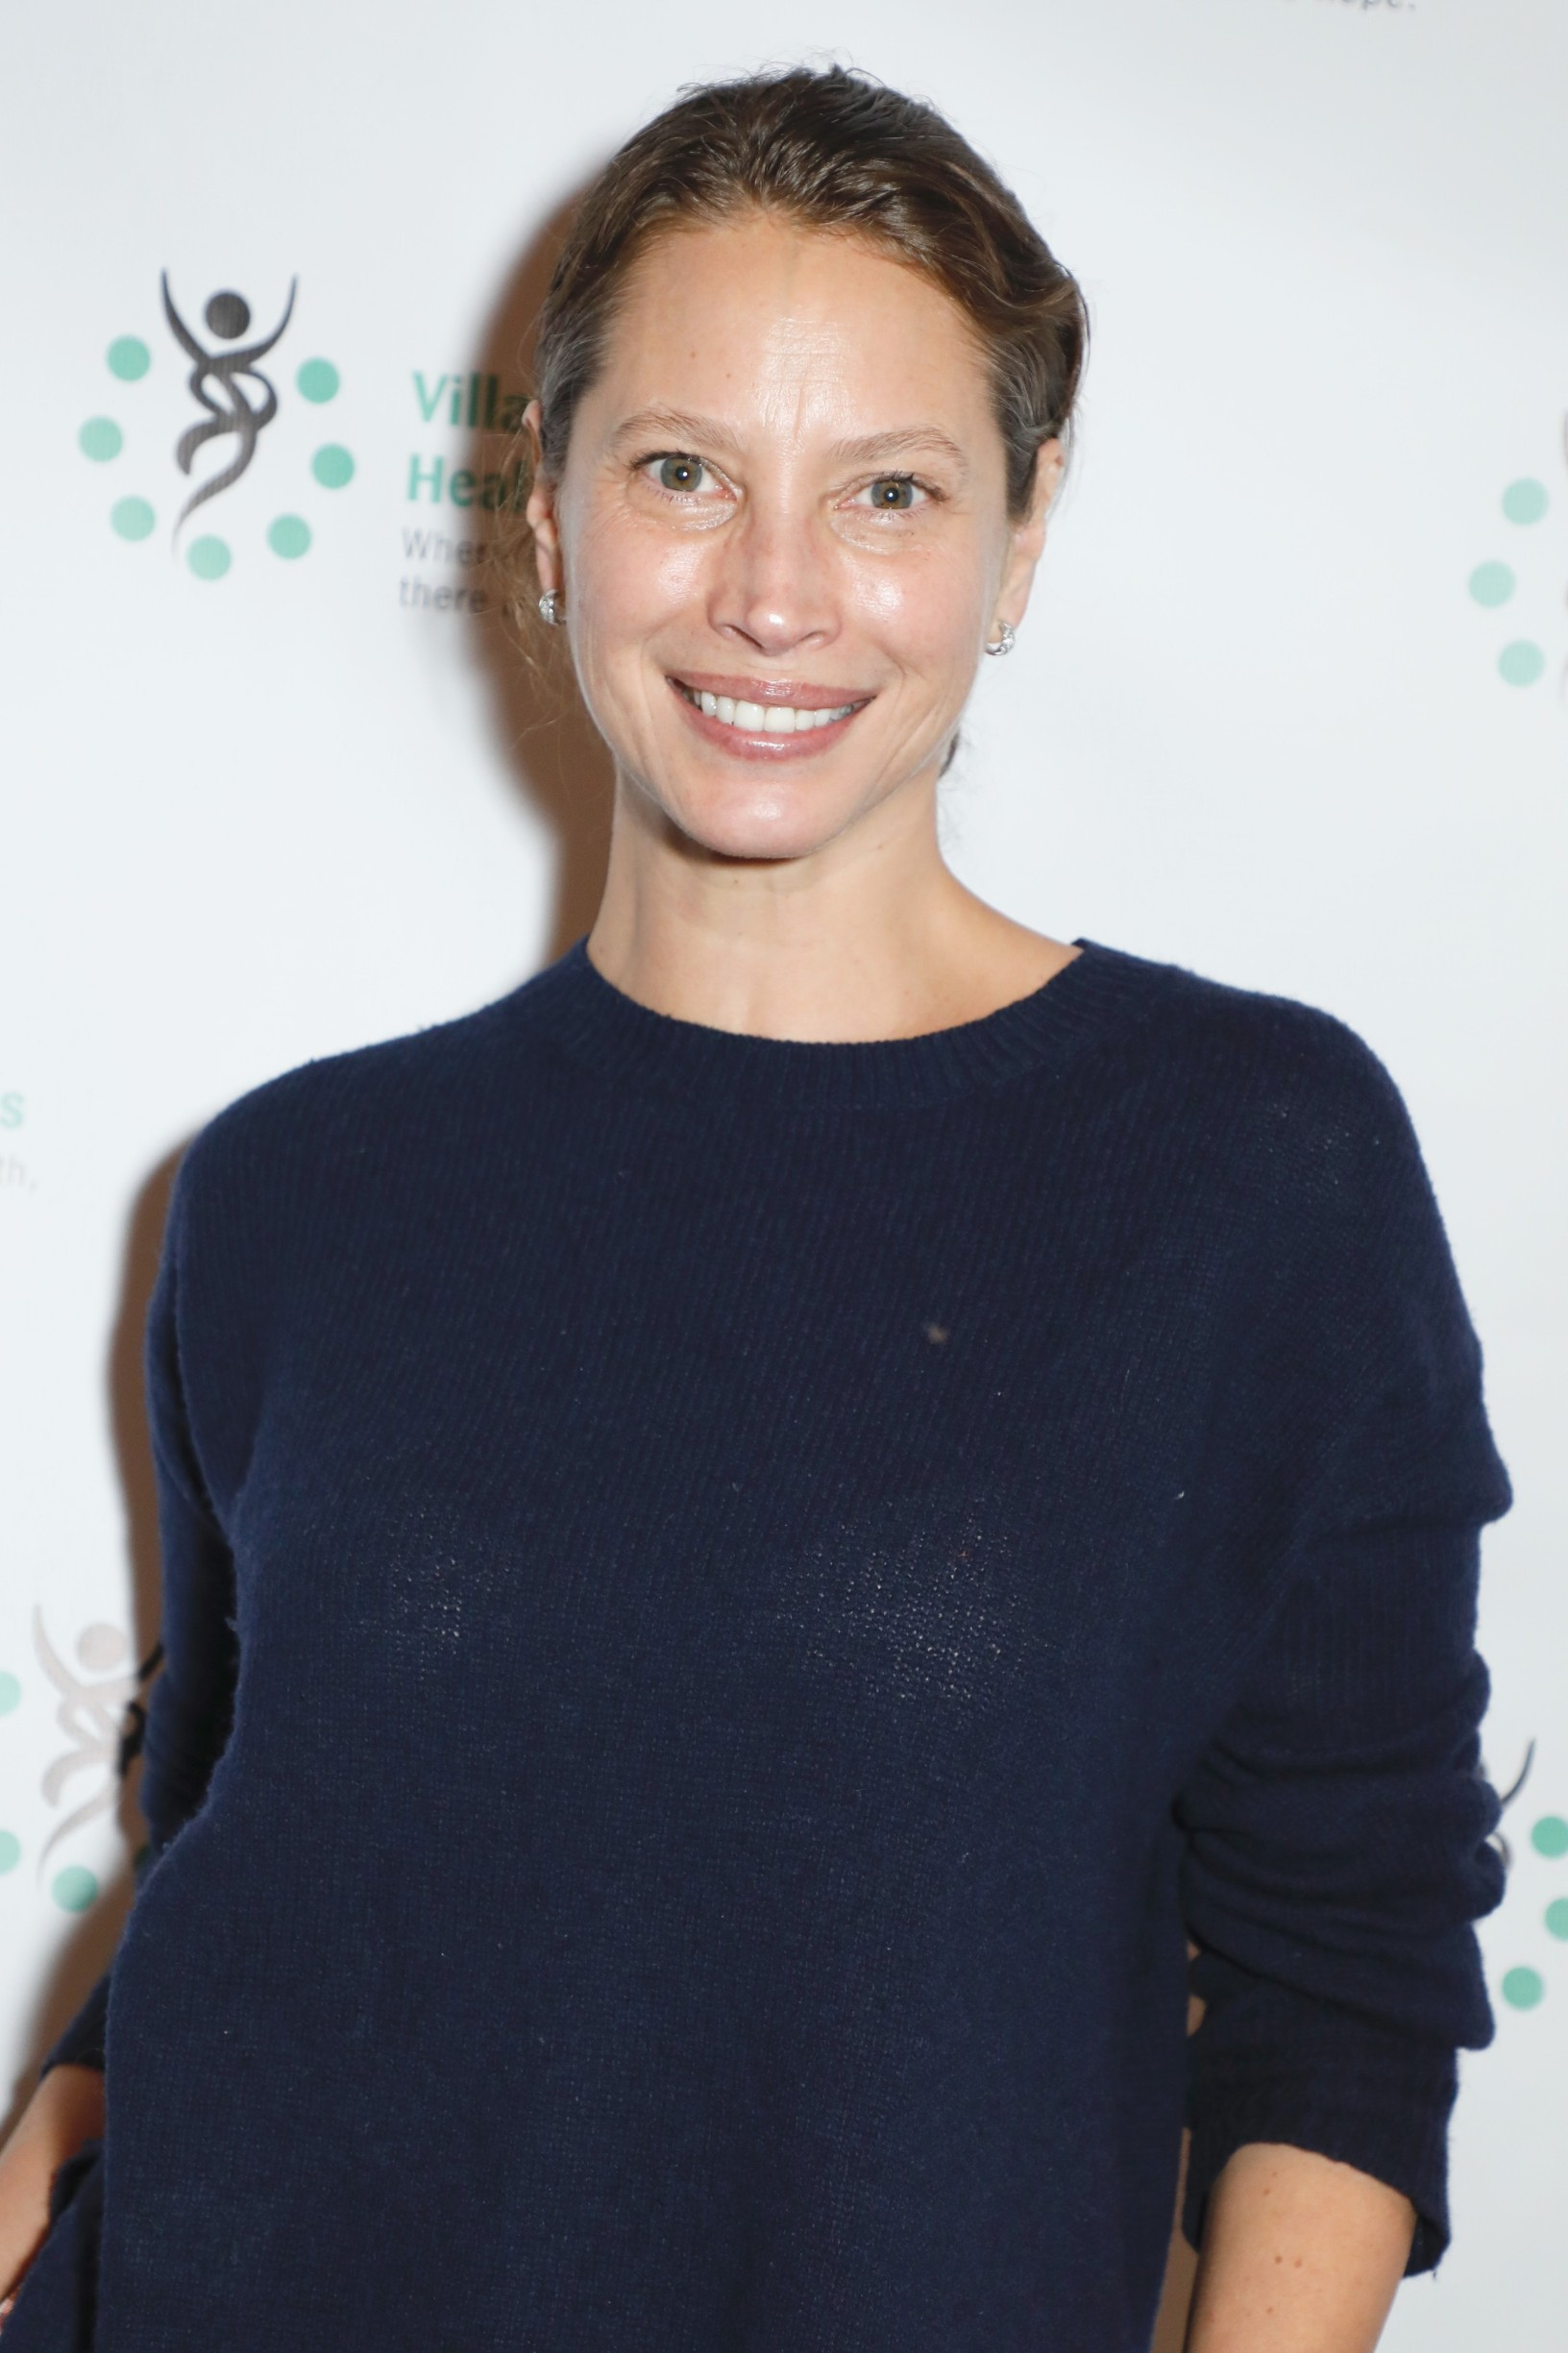 Christy Turlington 6th Annual Village Health Works holiday luncheon, New York, USA - 02 Dec 2019,Image: 486027756, License: Rights-managed, Restrictions: , Model Release: no, Credit line: Gregory Pace / Shutterstock Editorial / Profimedia